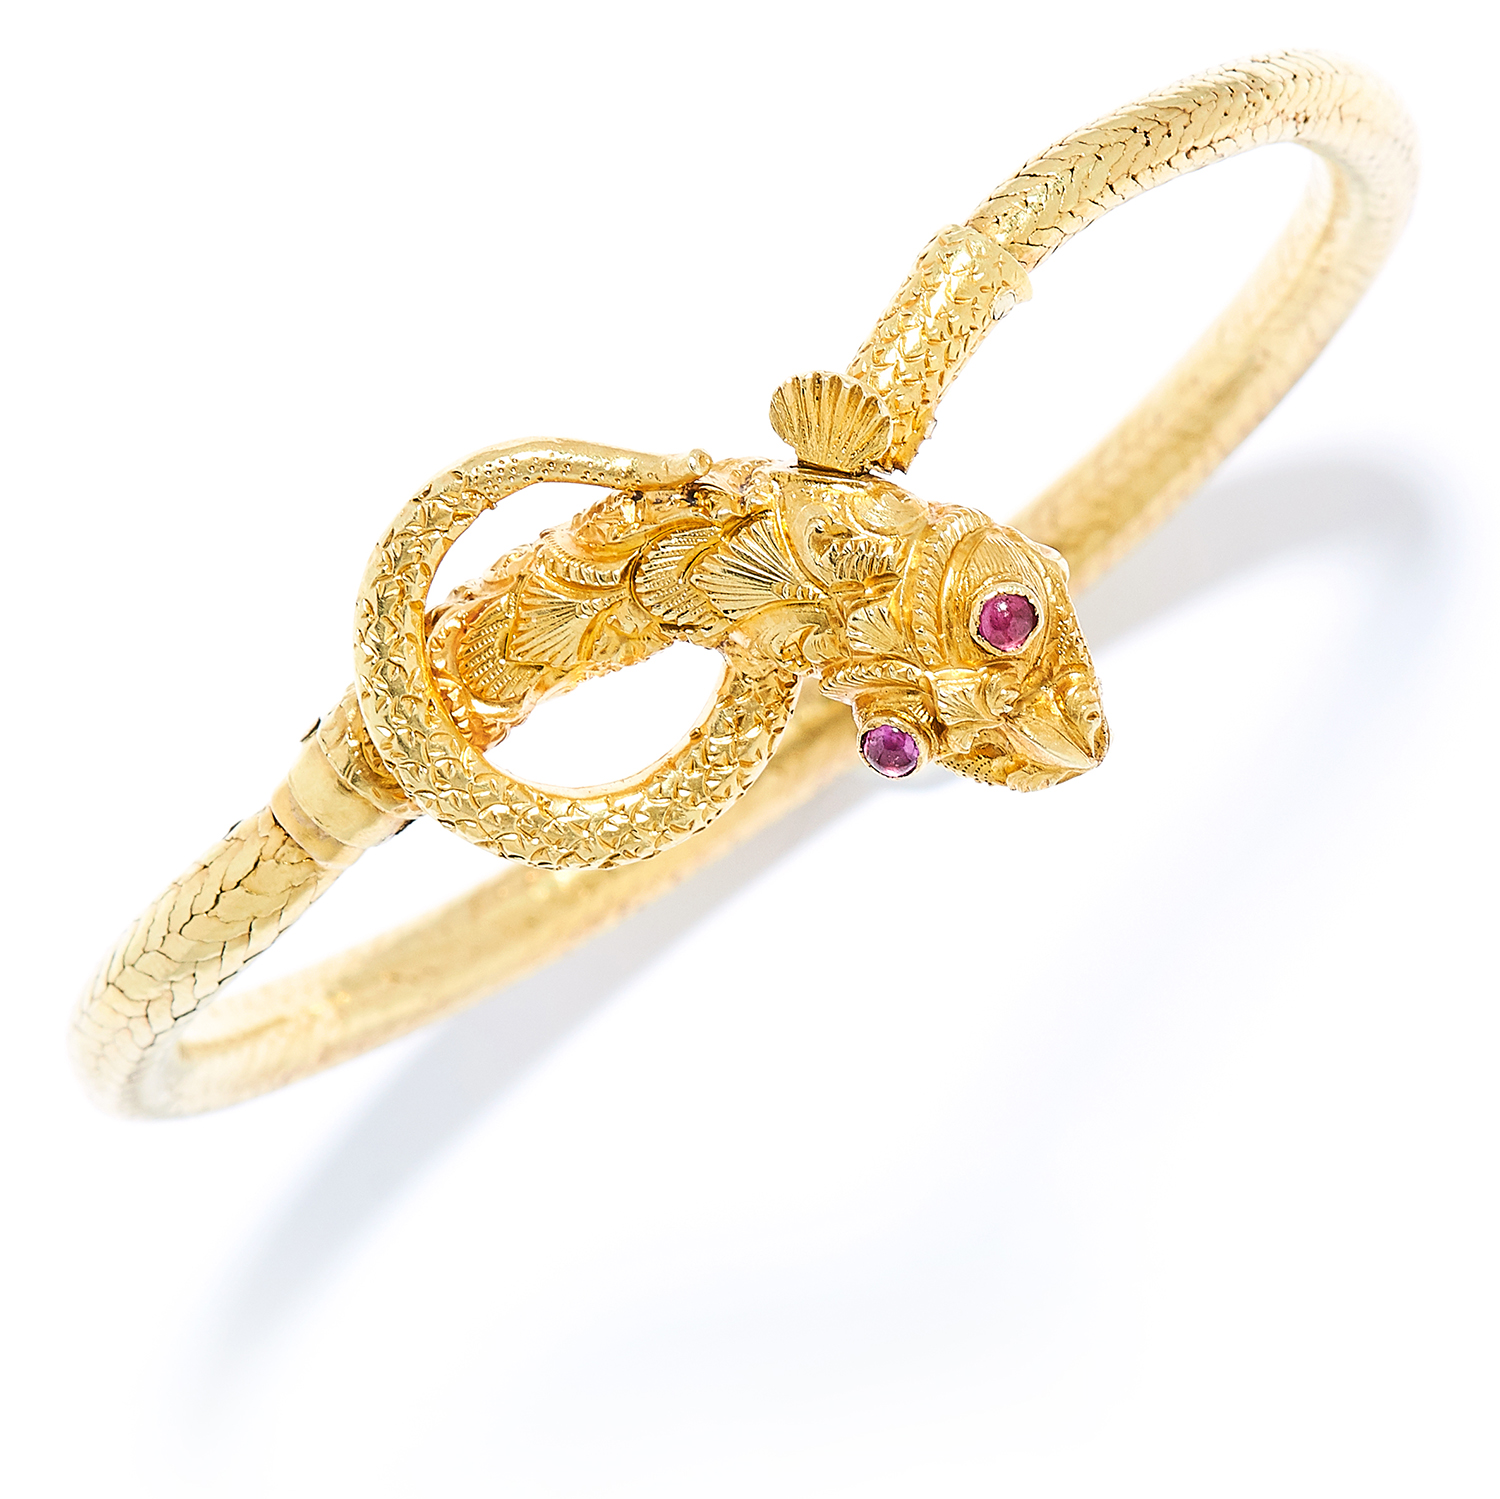 Los 5 - ANTIQUE RUBY SNAKE / SERPENT BANGLE in high carat yellow gold, depicting a dragon coiled around